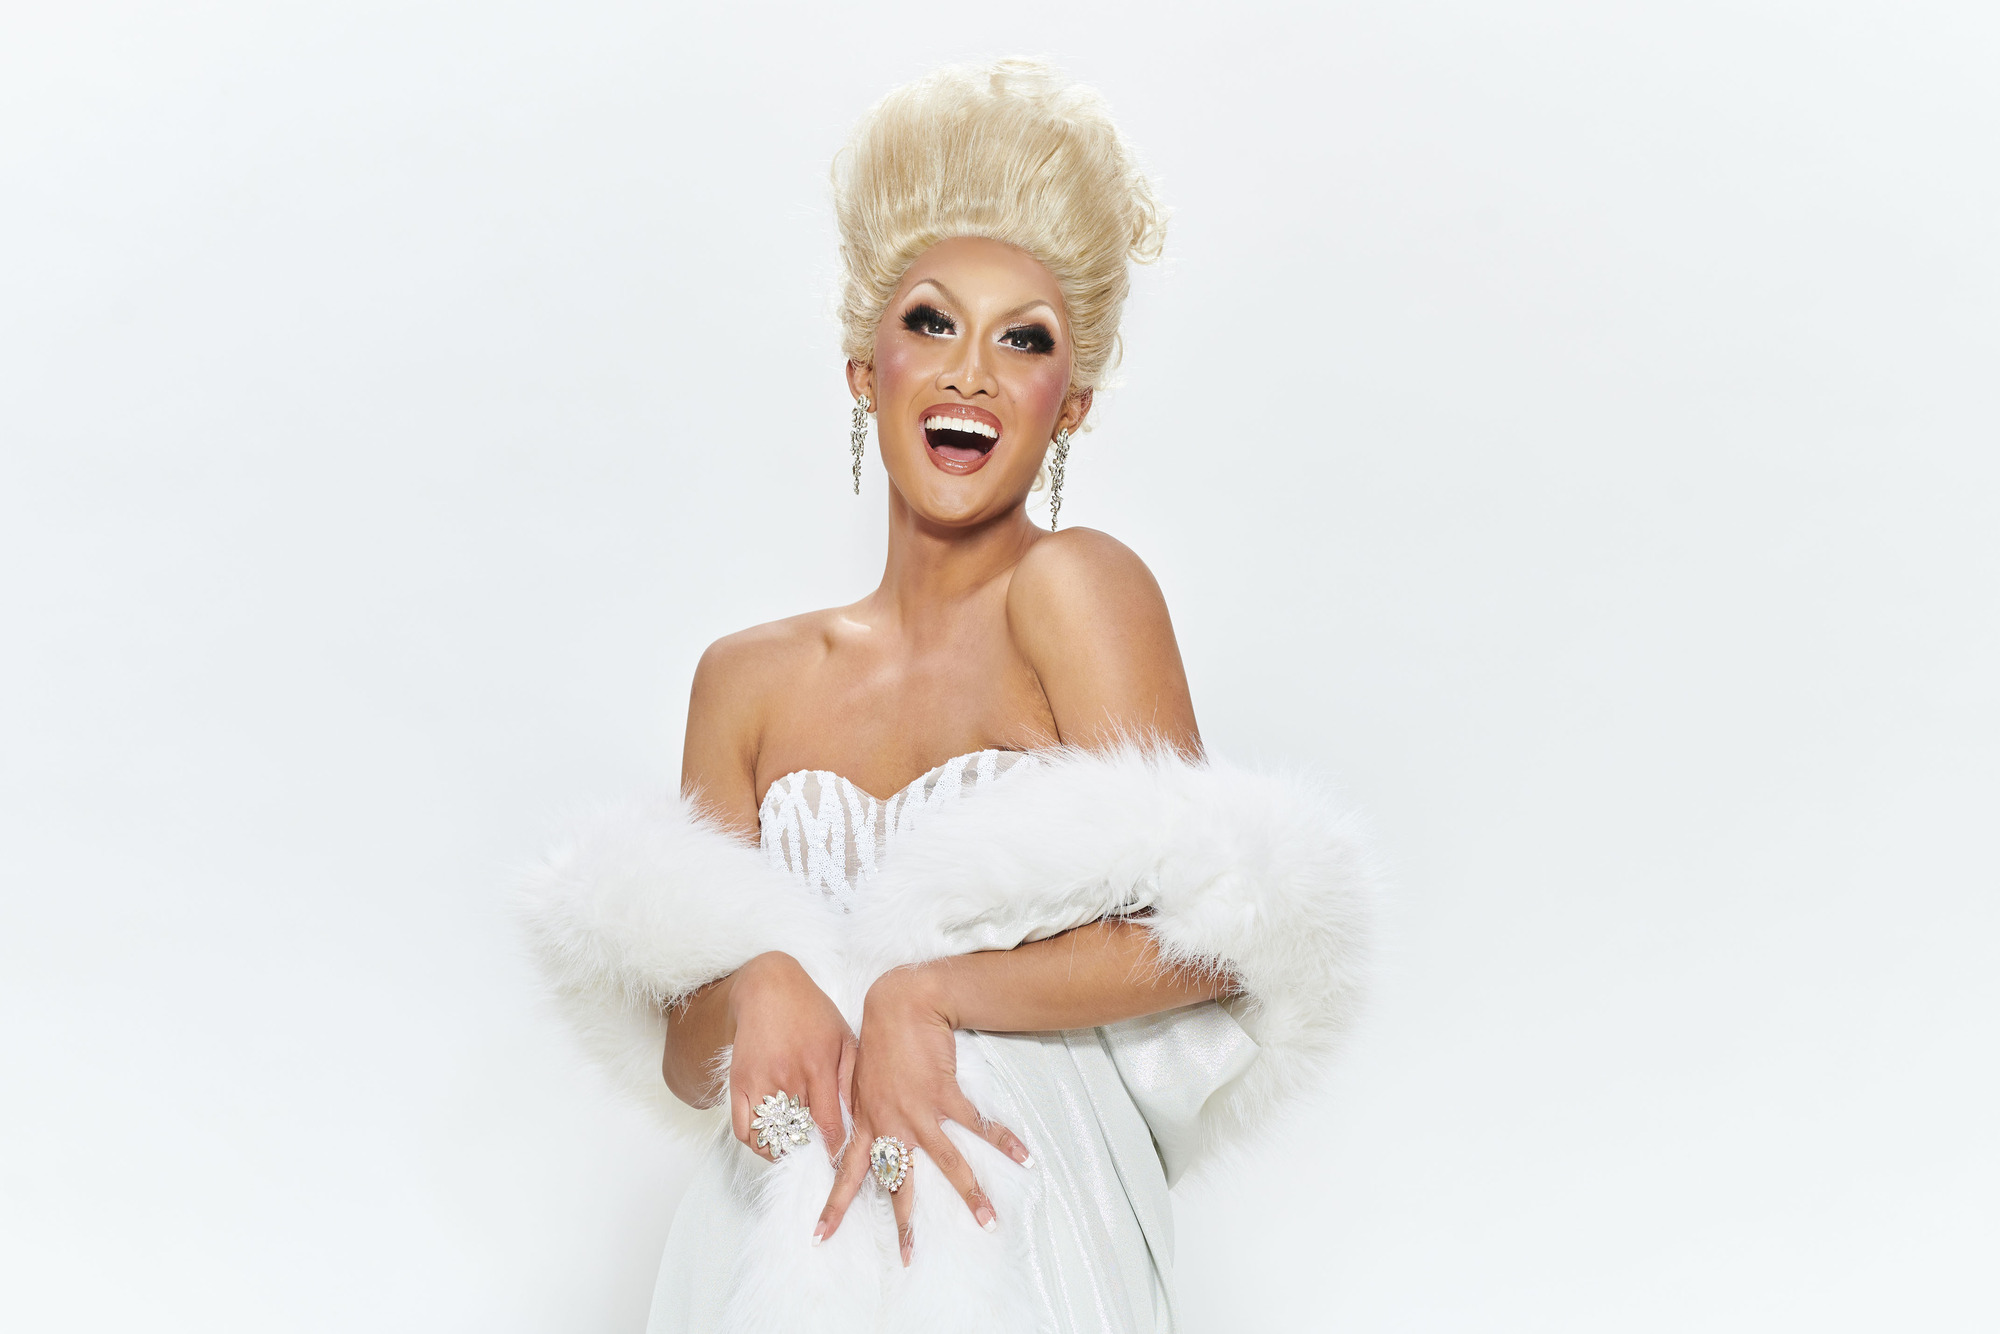 Canada's Drag Race star Kyne on the competition, her drag origins and which of the queens is a 'mediocre' lip-syncer